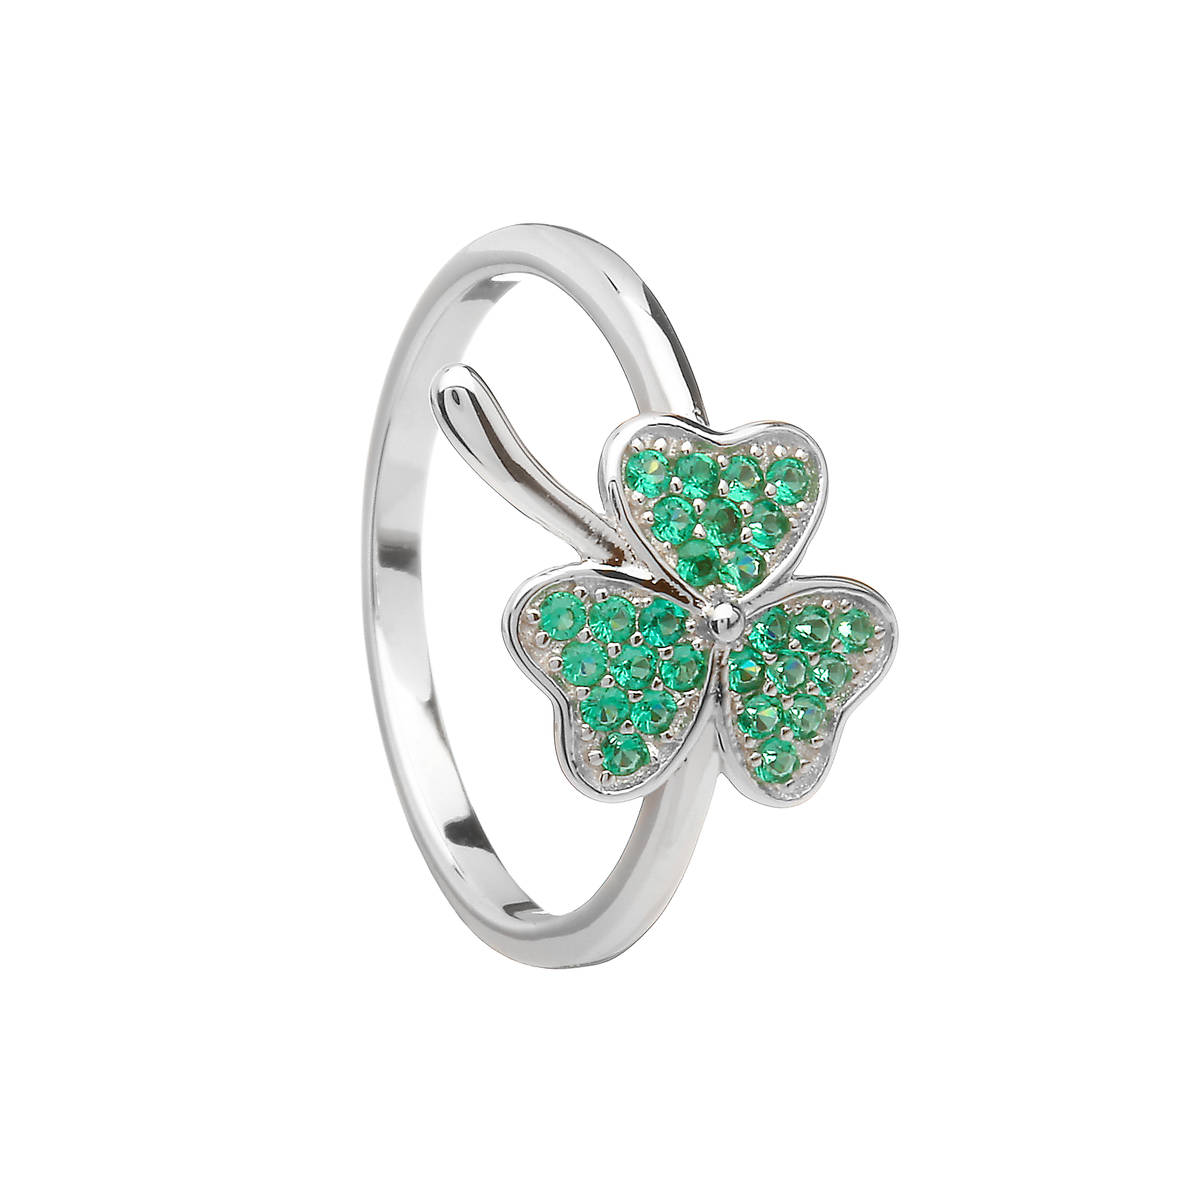 Silver Shamrock Ring With Green Cz